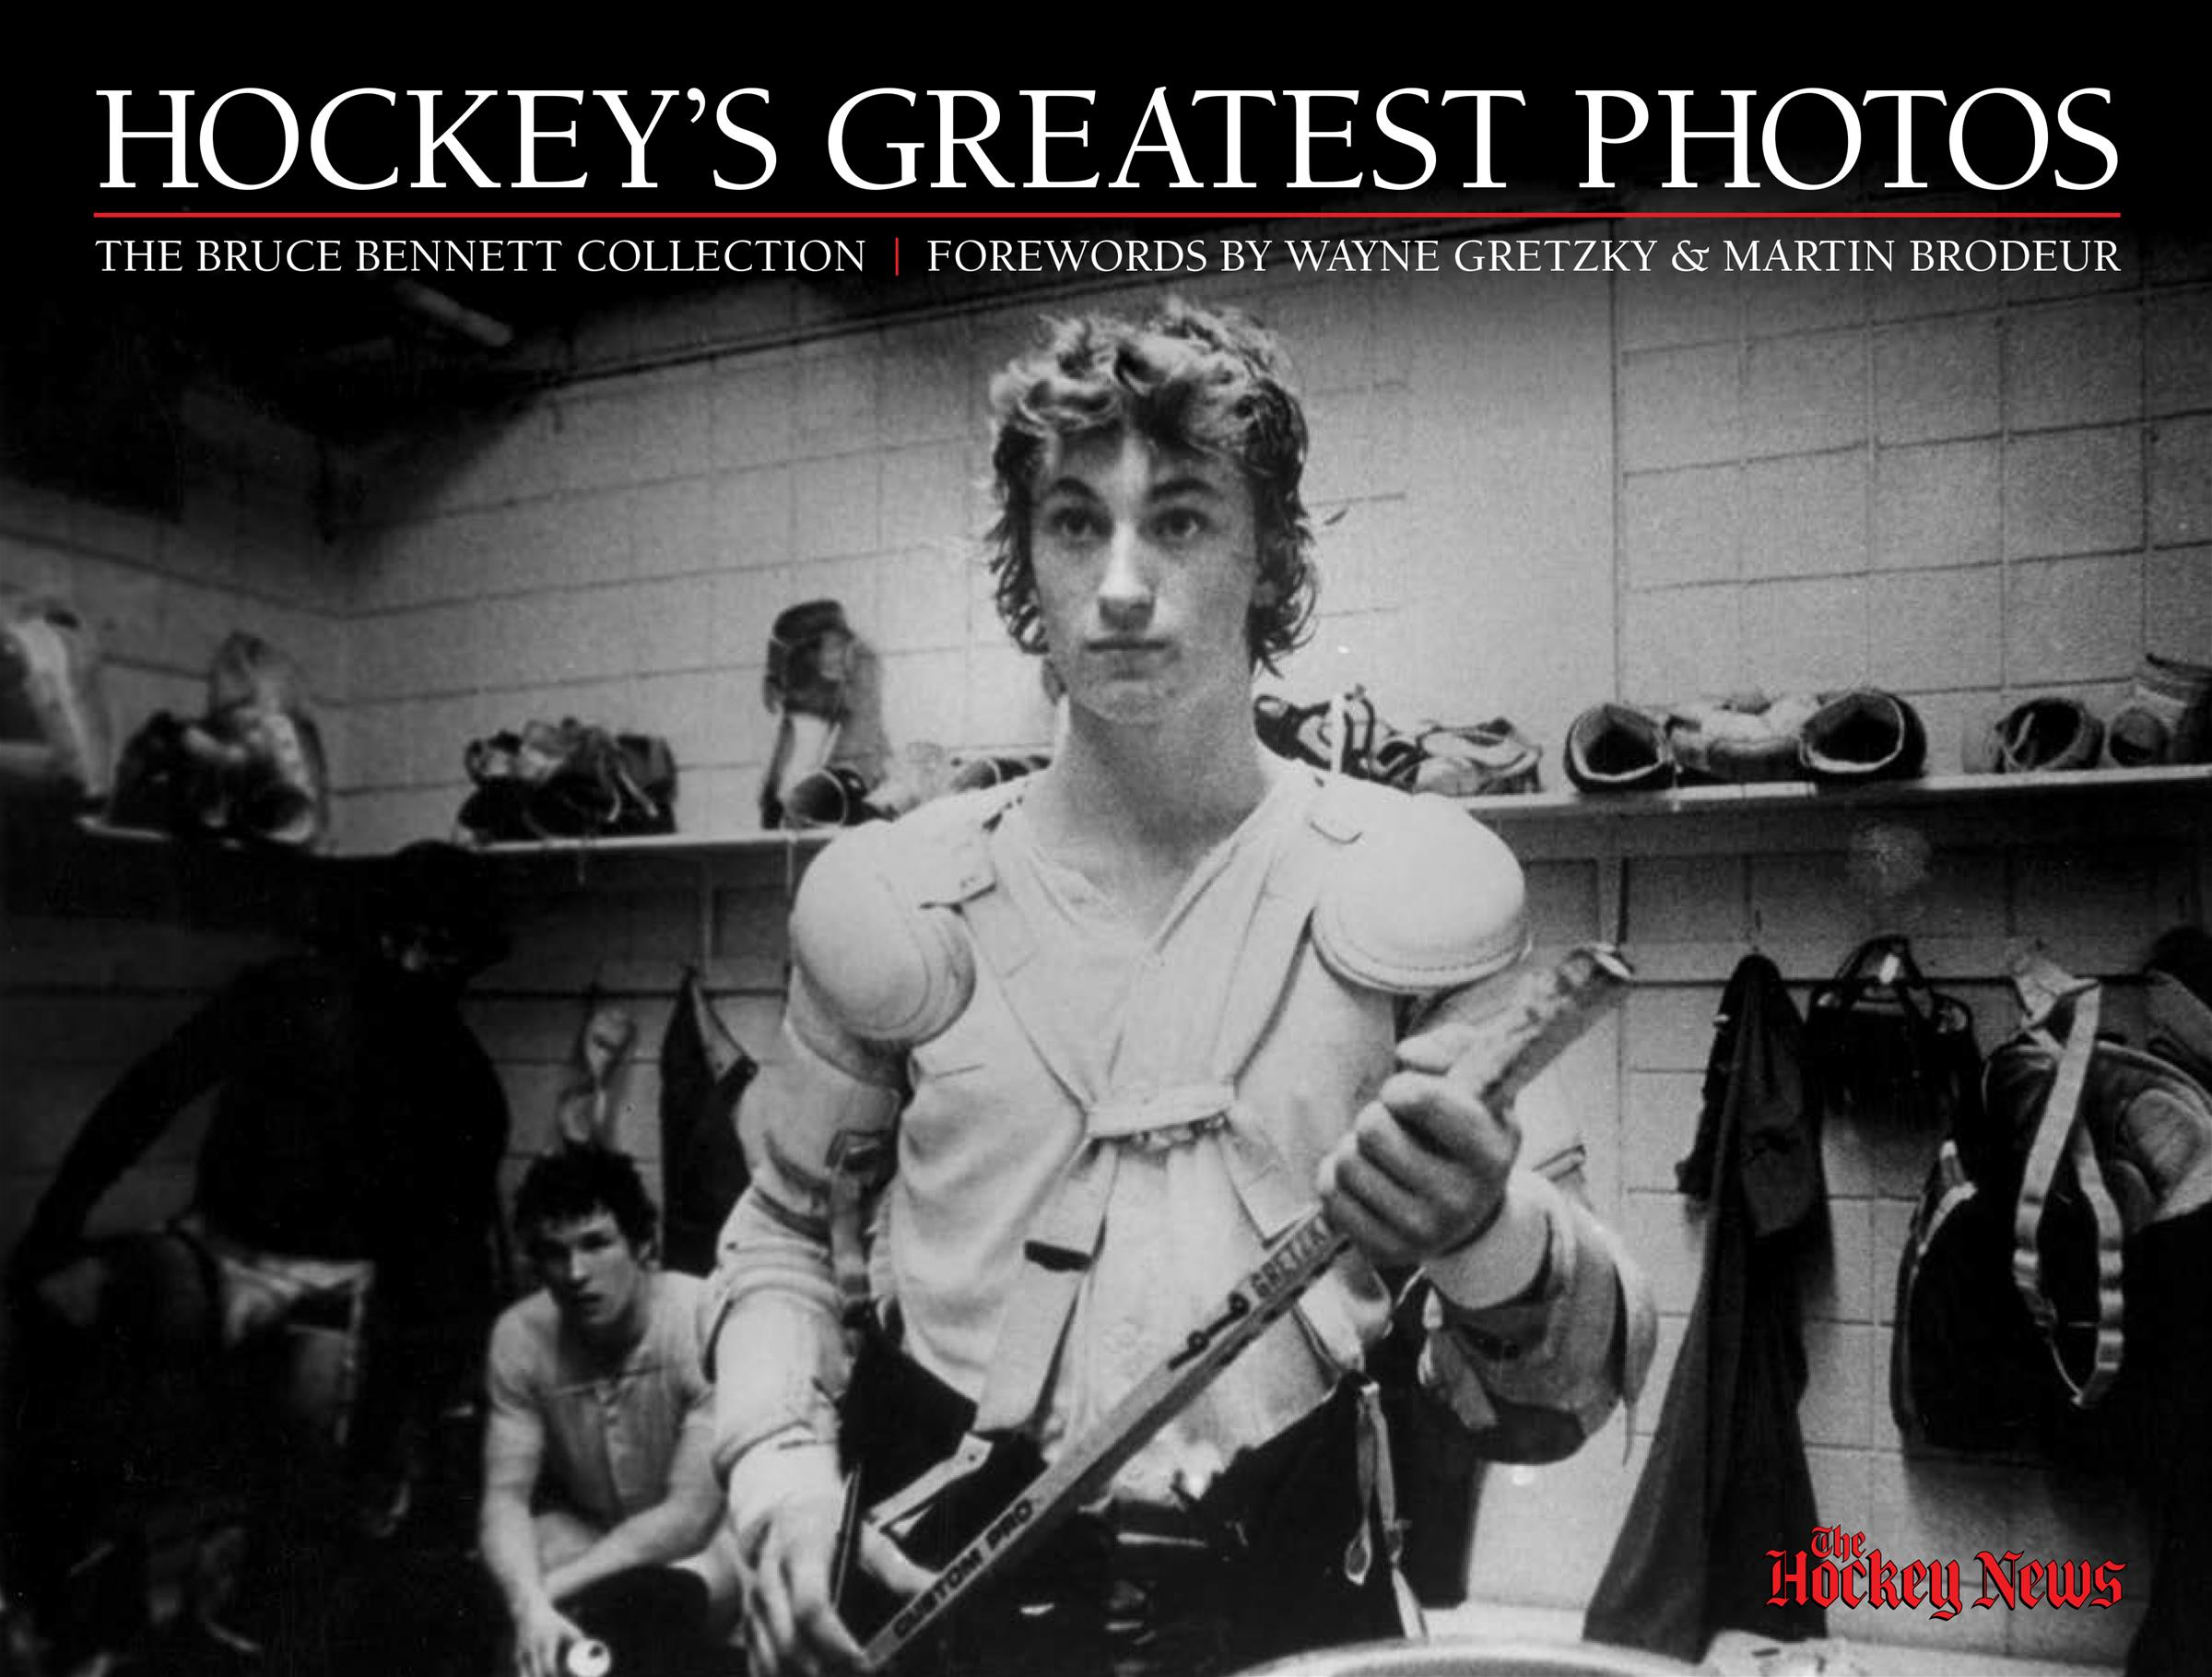 Hockey's Greatest Photos